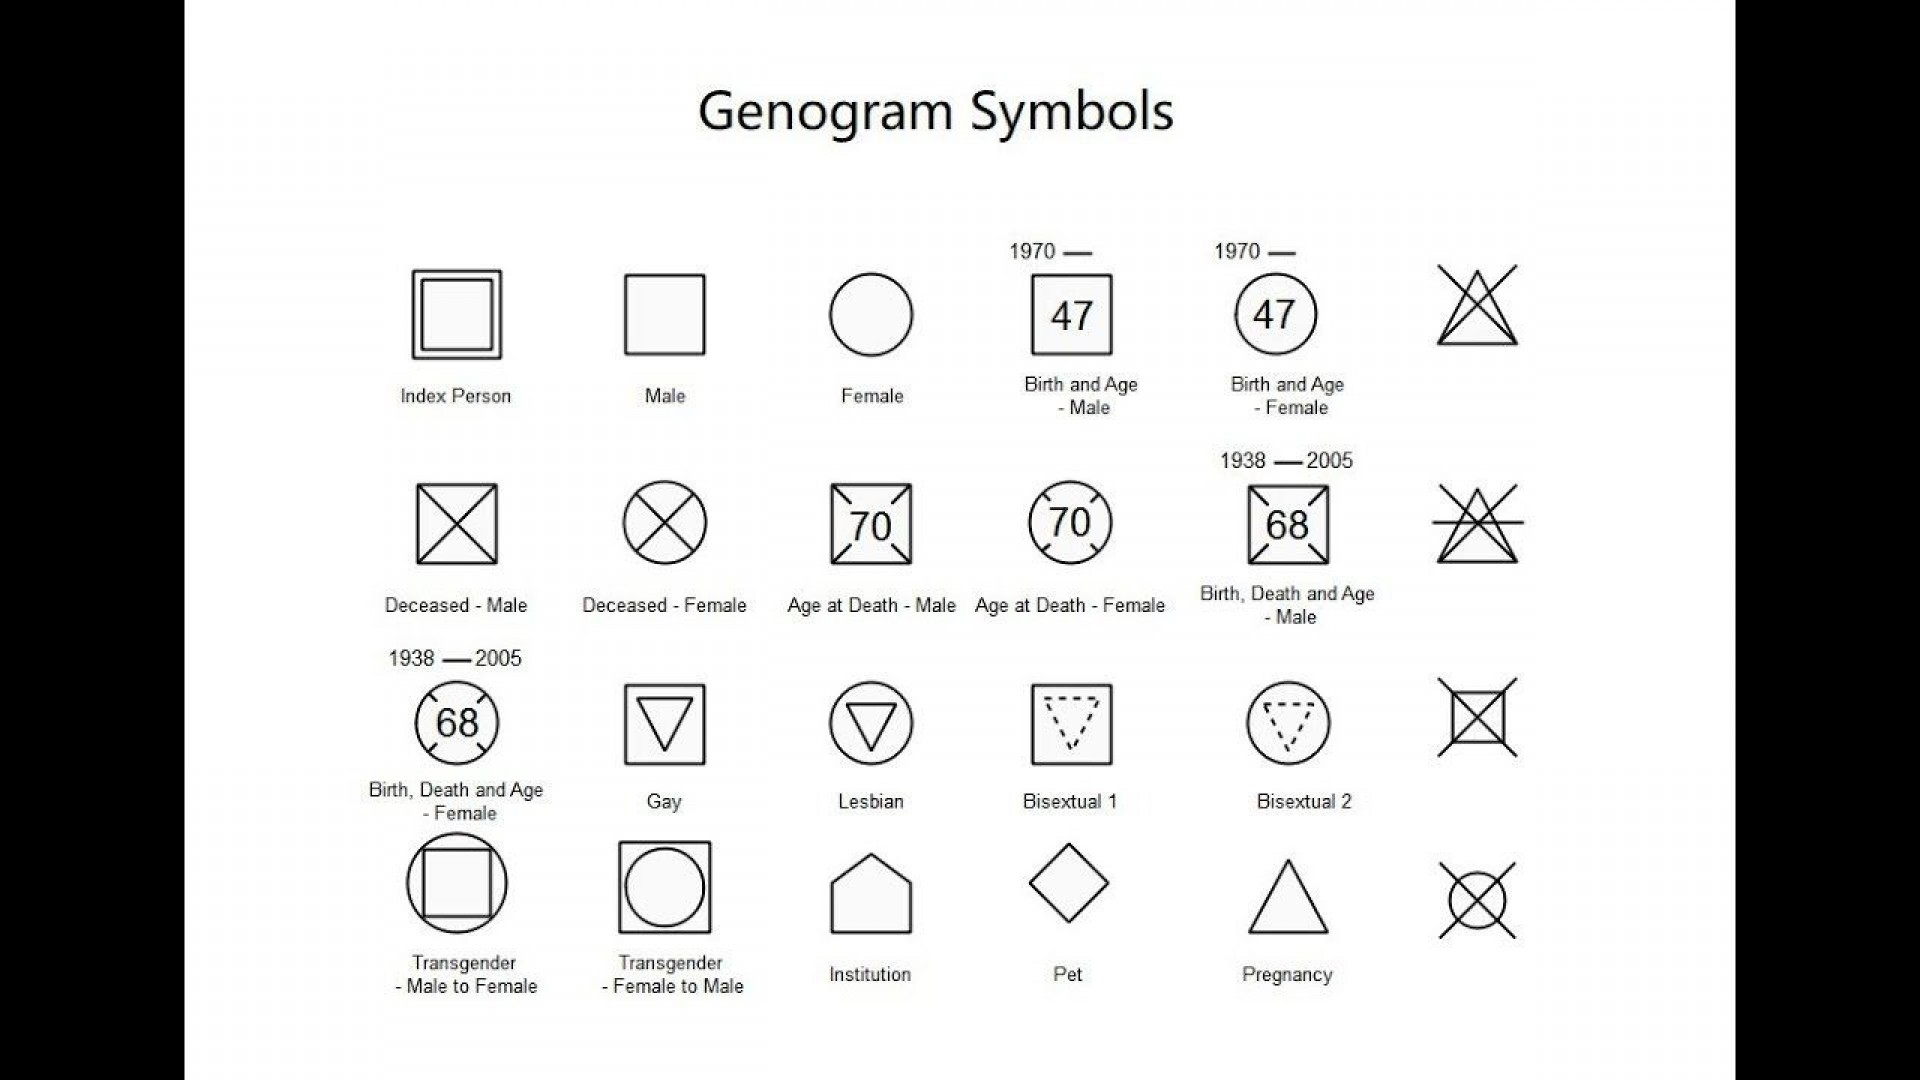 002 Unbelievable Family Medical History Genogram Template Image 1920